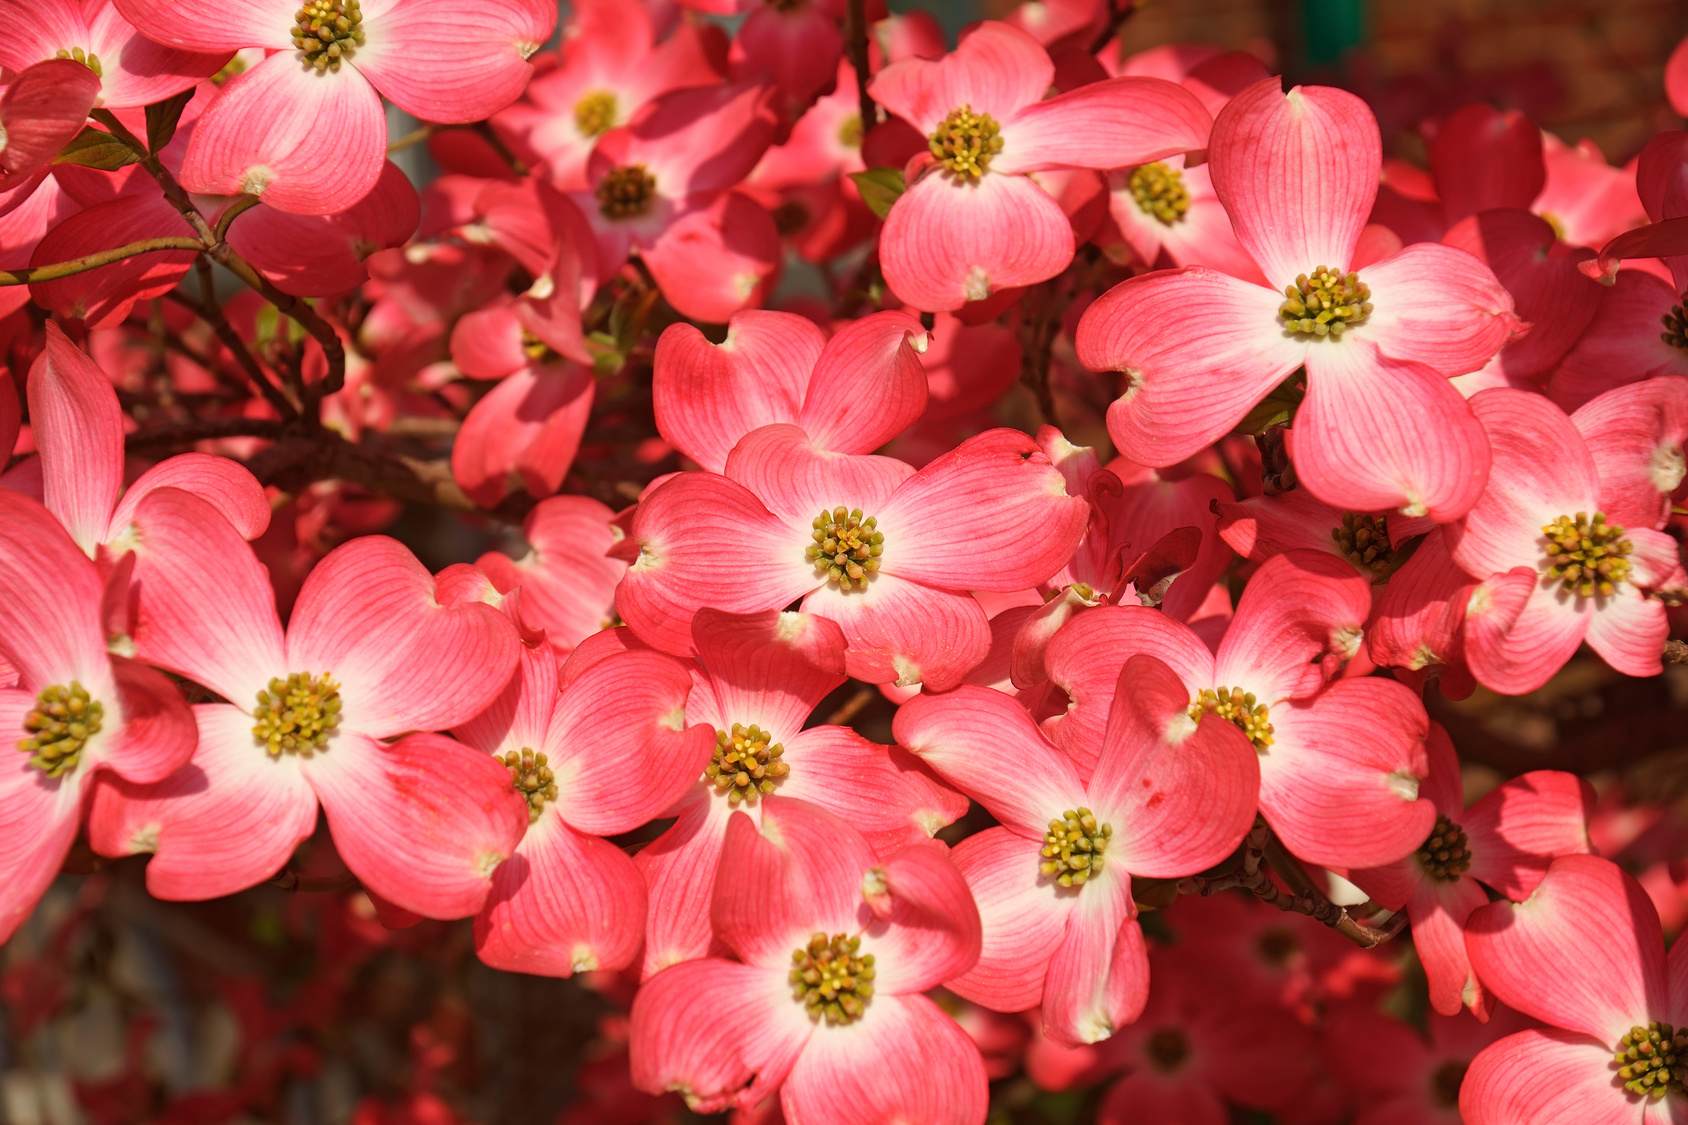 Flowering Dogwood (Cornus florida). Called American Dogwood and Eastern Dogwood also. State tree of North Carolina, West Virginia, Missouri and Virginia